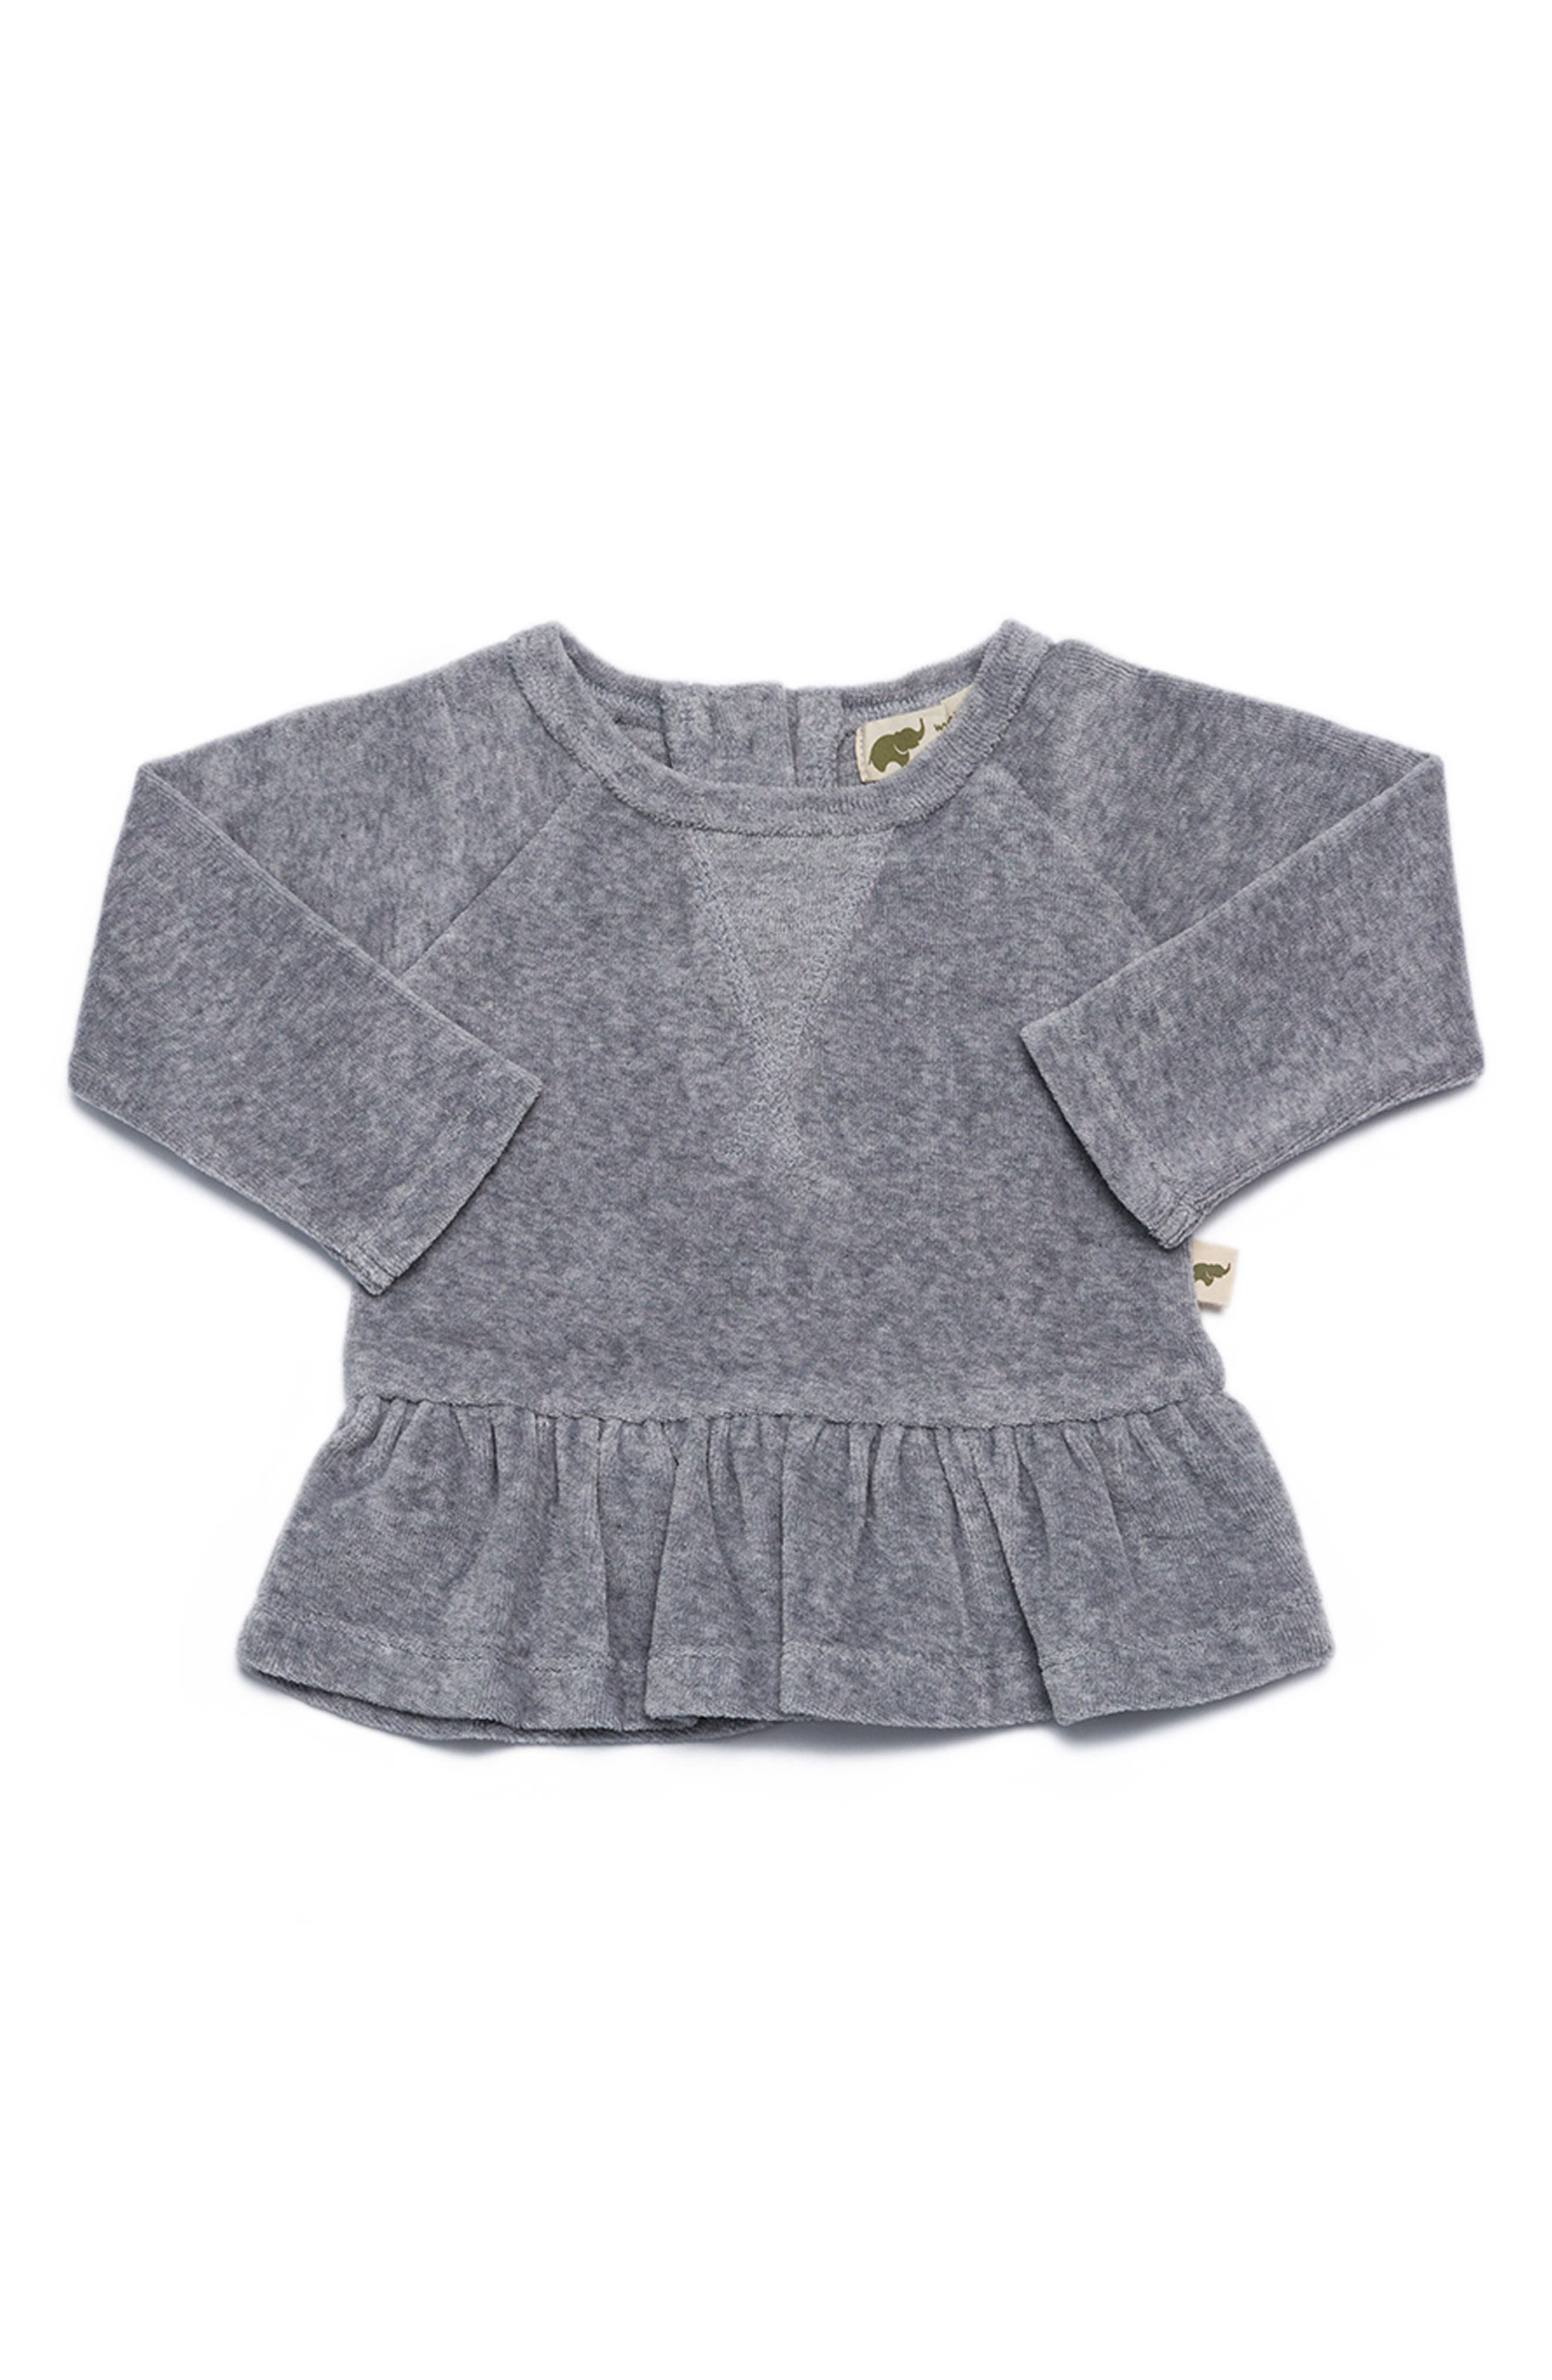 Peplum Organic Cotton Sweatshirt,                             Main thumbnail 1, color,                             020